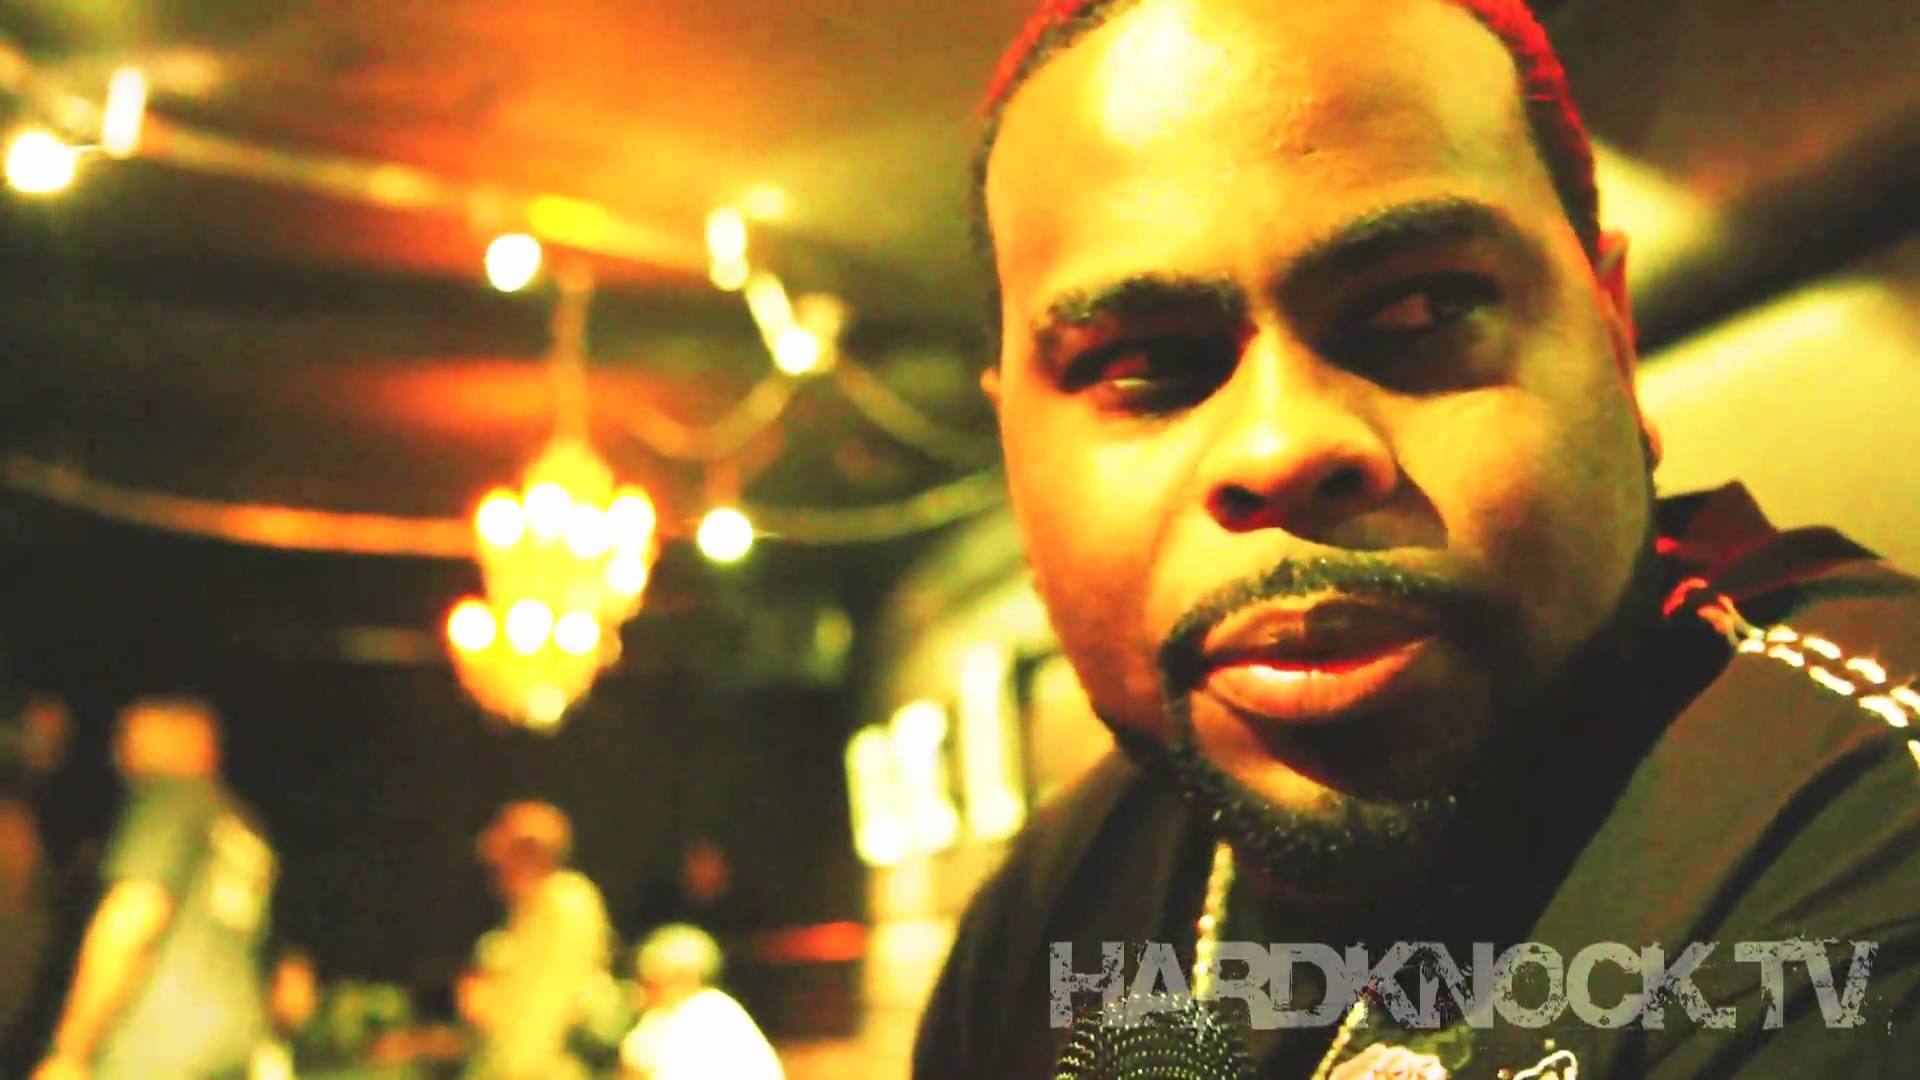 Crooked I addresses beef with Wu-Tang and Snoop Dogg